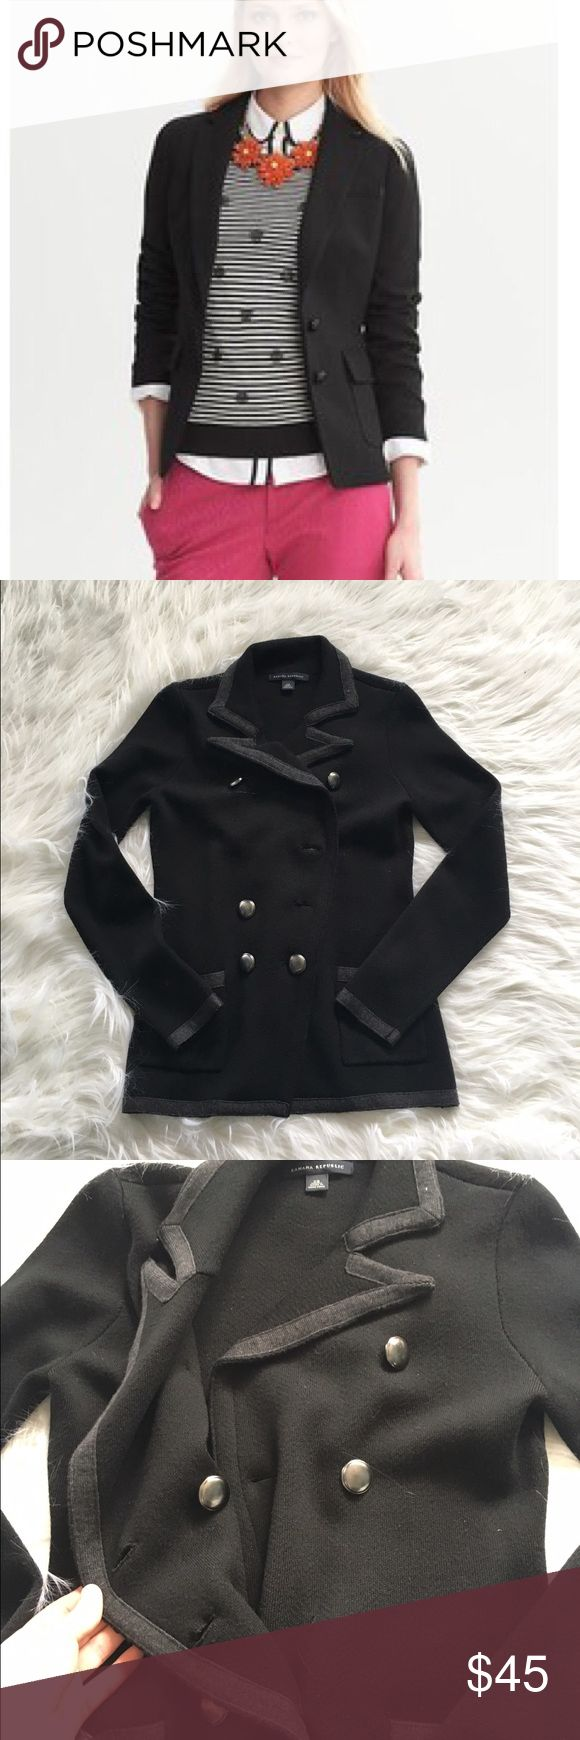 Banana Republic Black Hacking Jacket THERE IS NO BUTTONS MISSING! I just took the photo with the jacket closed. Excellent condition with no flaws and tons of life left! NO TRADES PLEASE Banana Republic Jackets & Coats Blazers